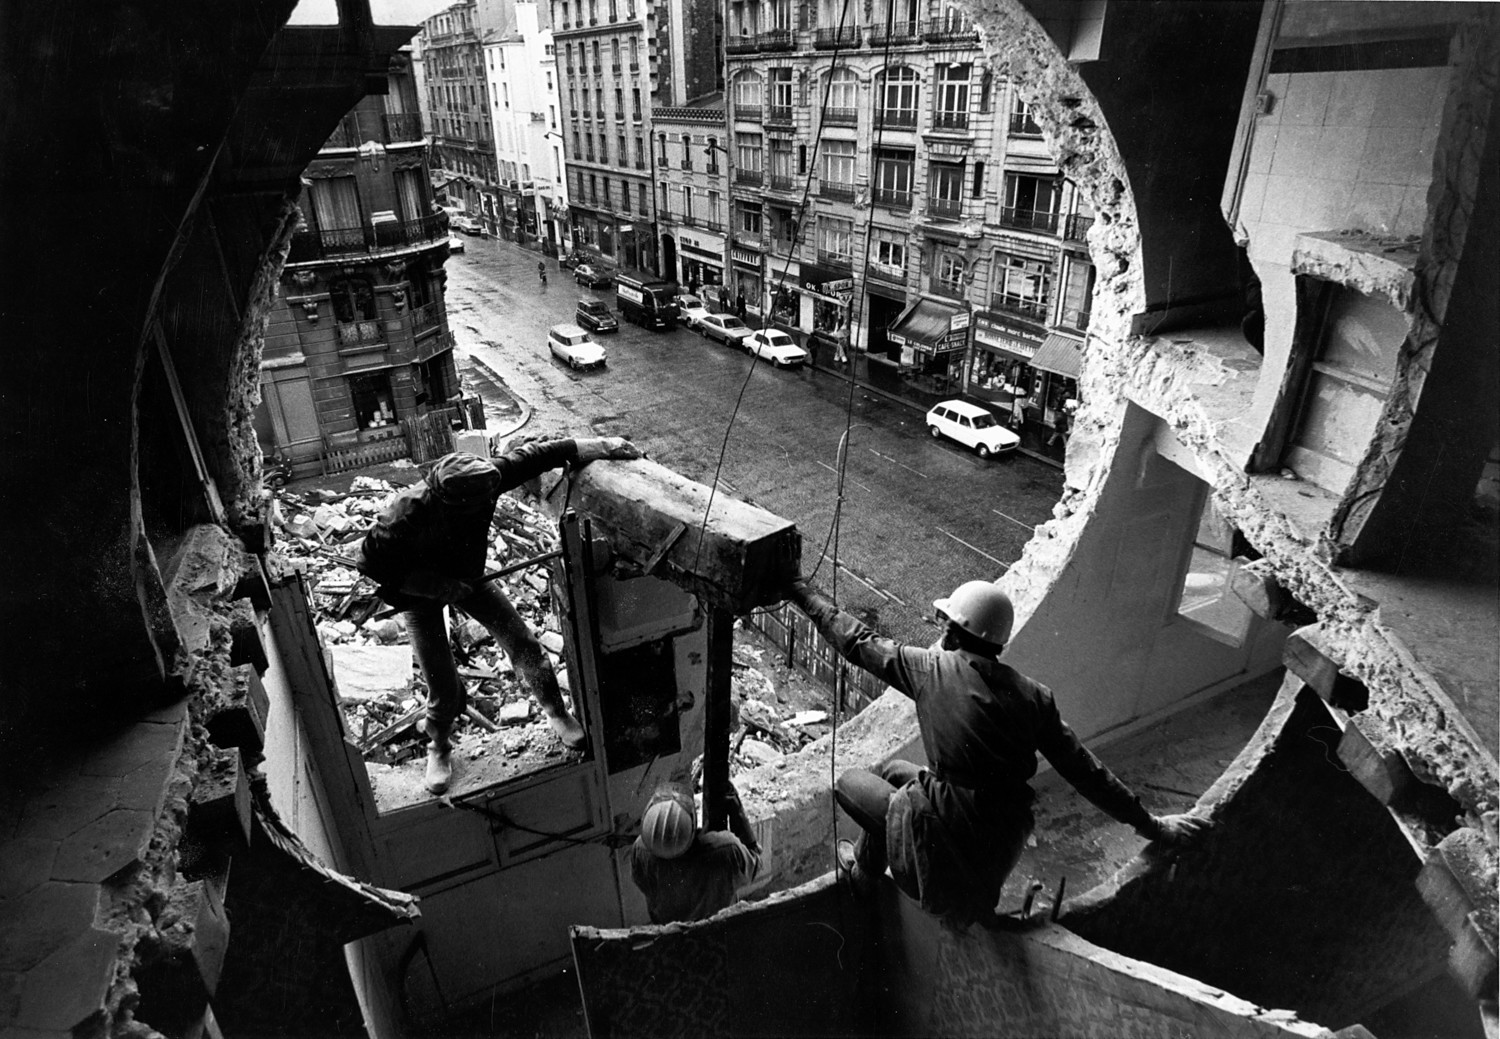 Gordon Matta-Clark, with crowbar at left, works with Gerry Hovagimyan on 'Conical Intersect' in 1975. In this piece, which turns an abandoned Parisian building into sculpture on a giant scale, Matta-Clark provides commentary about how the idea of social stratification makes inequalities like income, race and education more apparent in society.